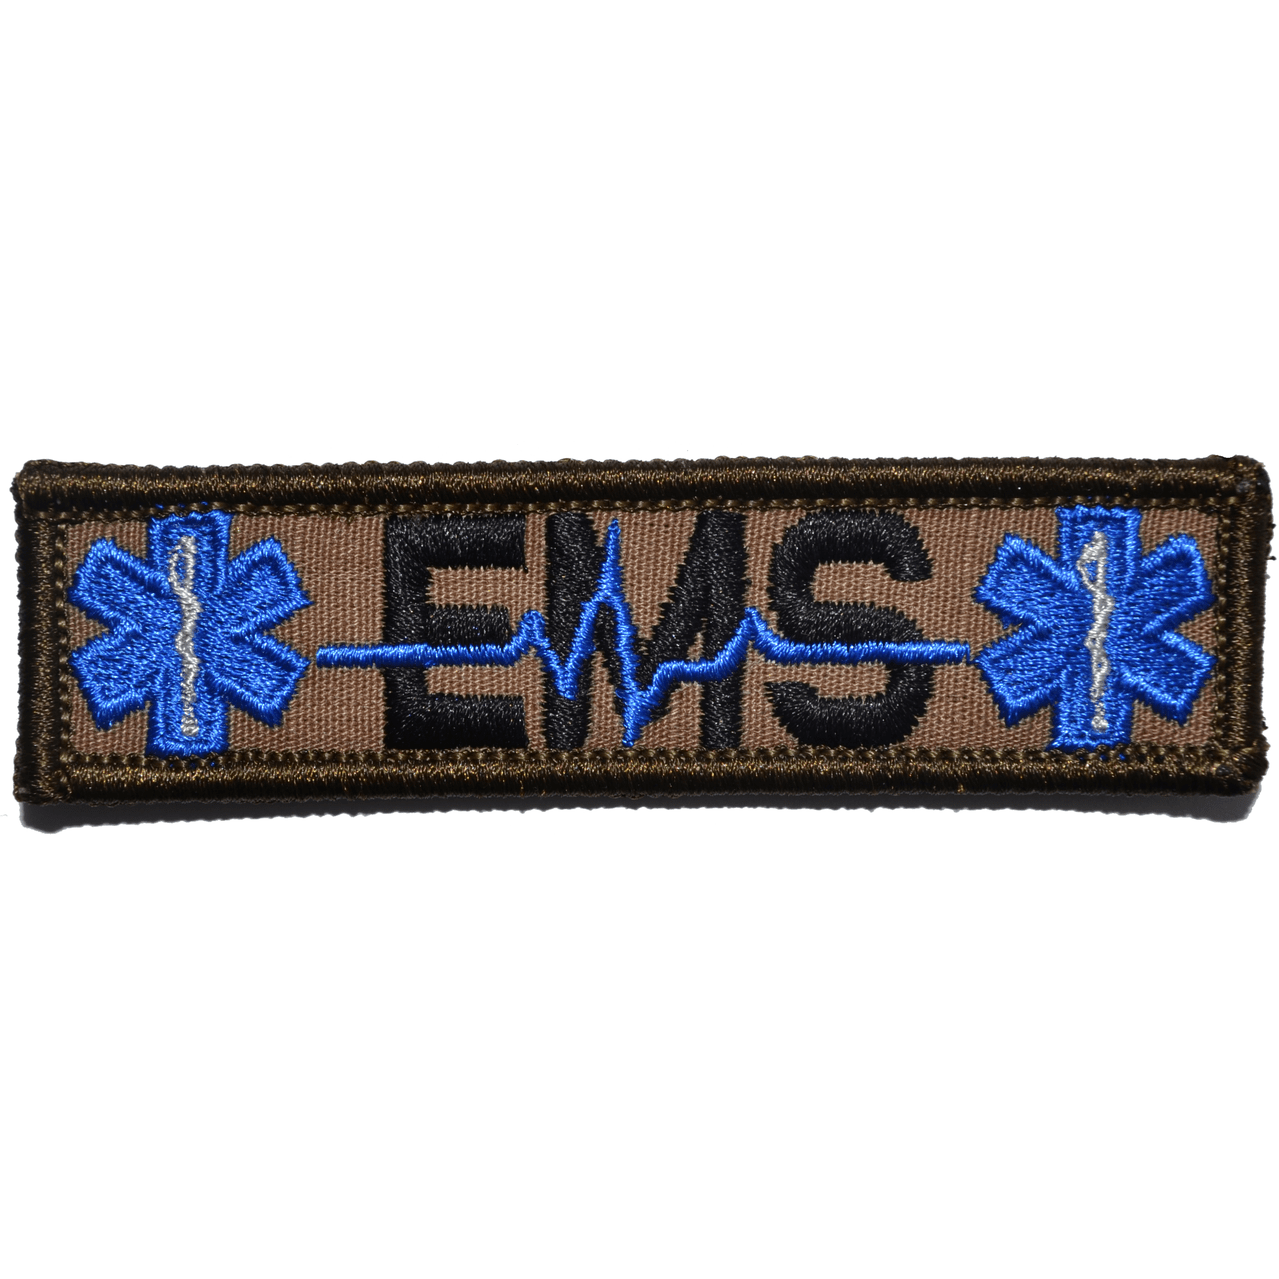 Tactical Gear Junkie Patches Coyote Brown w/ Black EMS Heartbeat and Stars of Life - 1x3.75 Patch